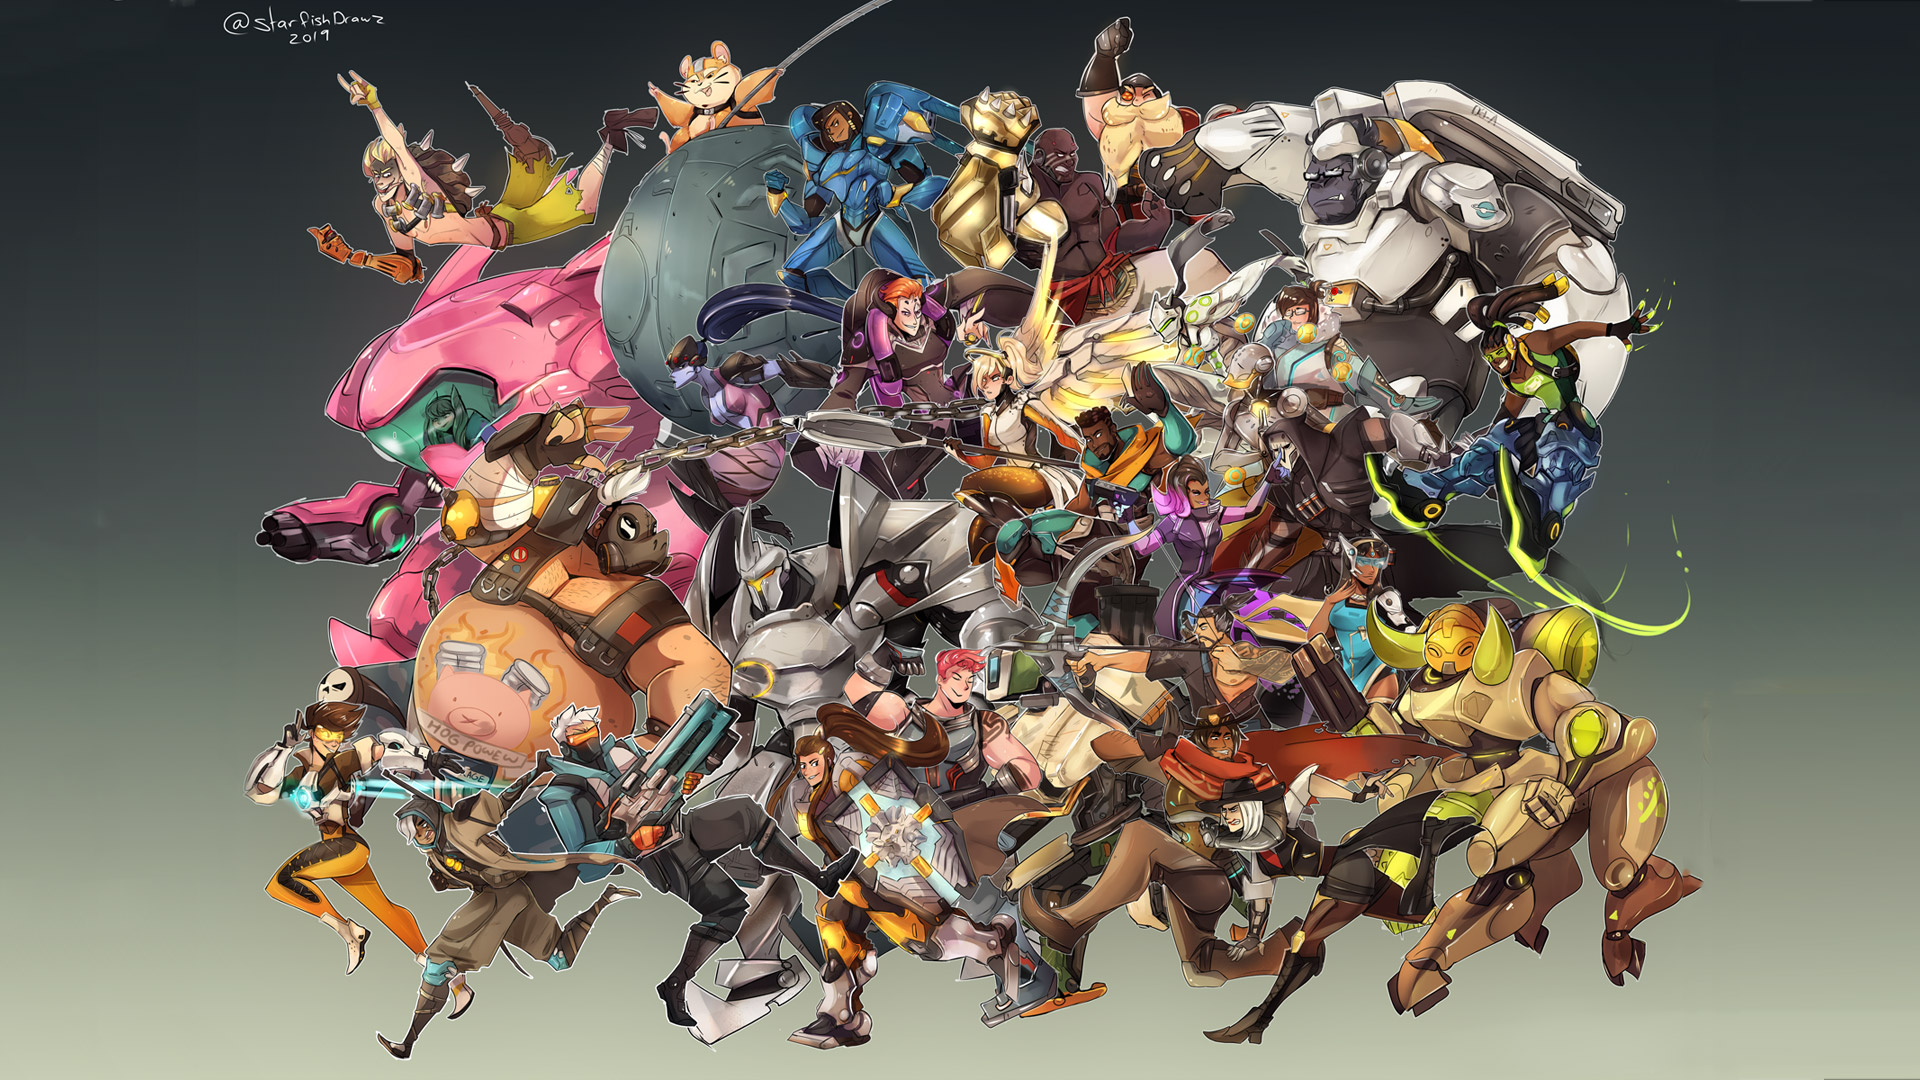 Free Overwatch Wallpaper in 1920x1080